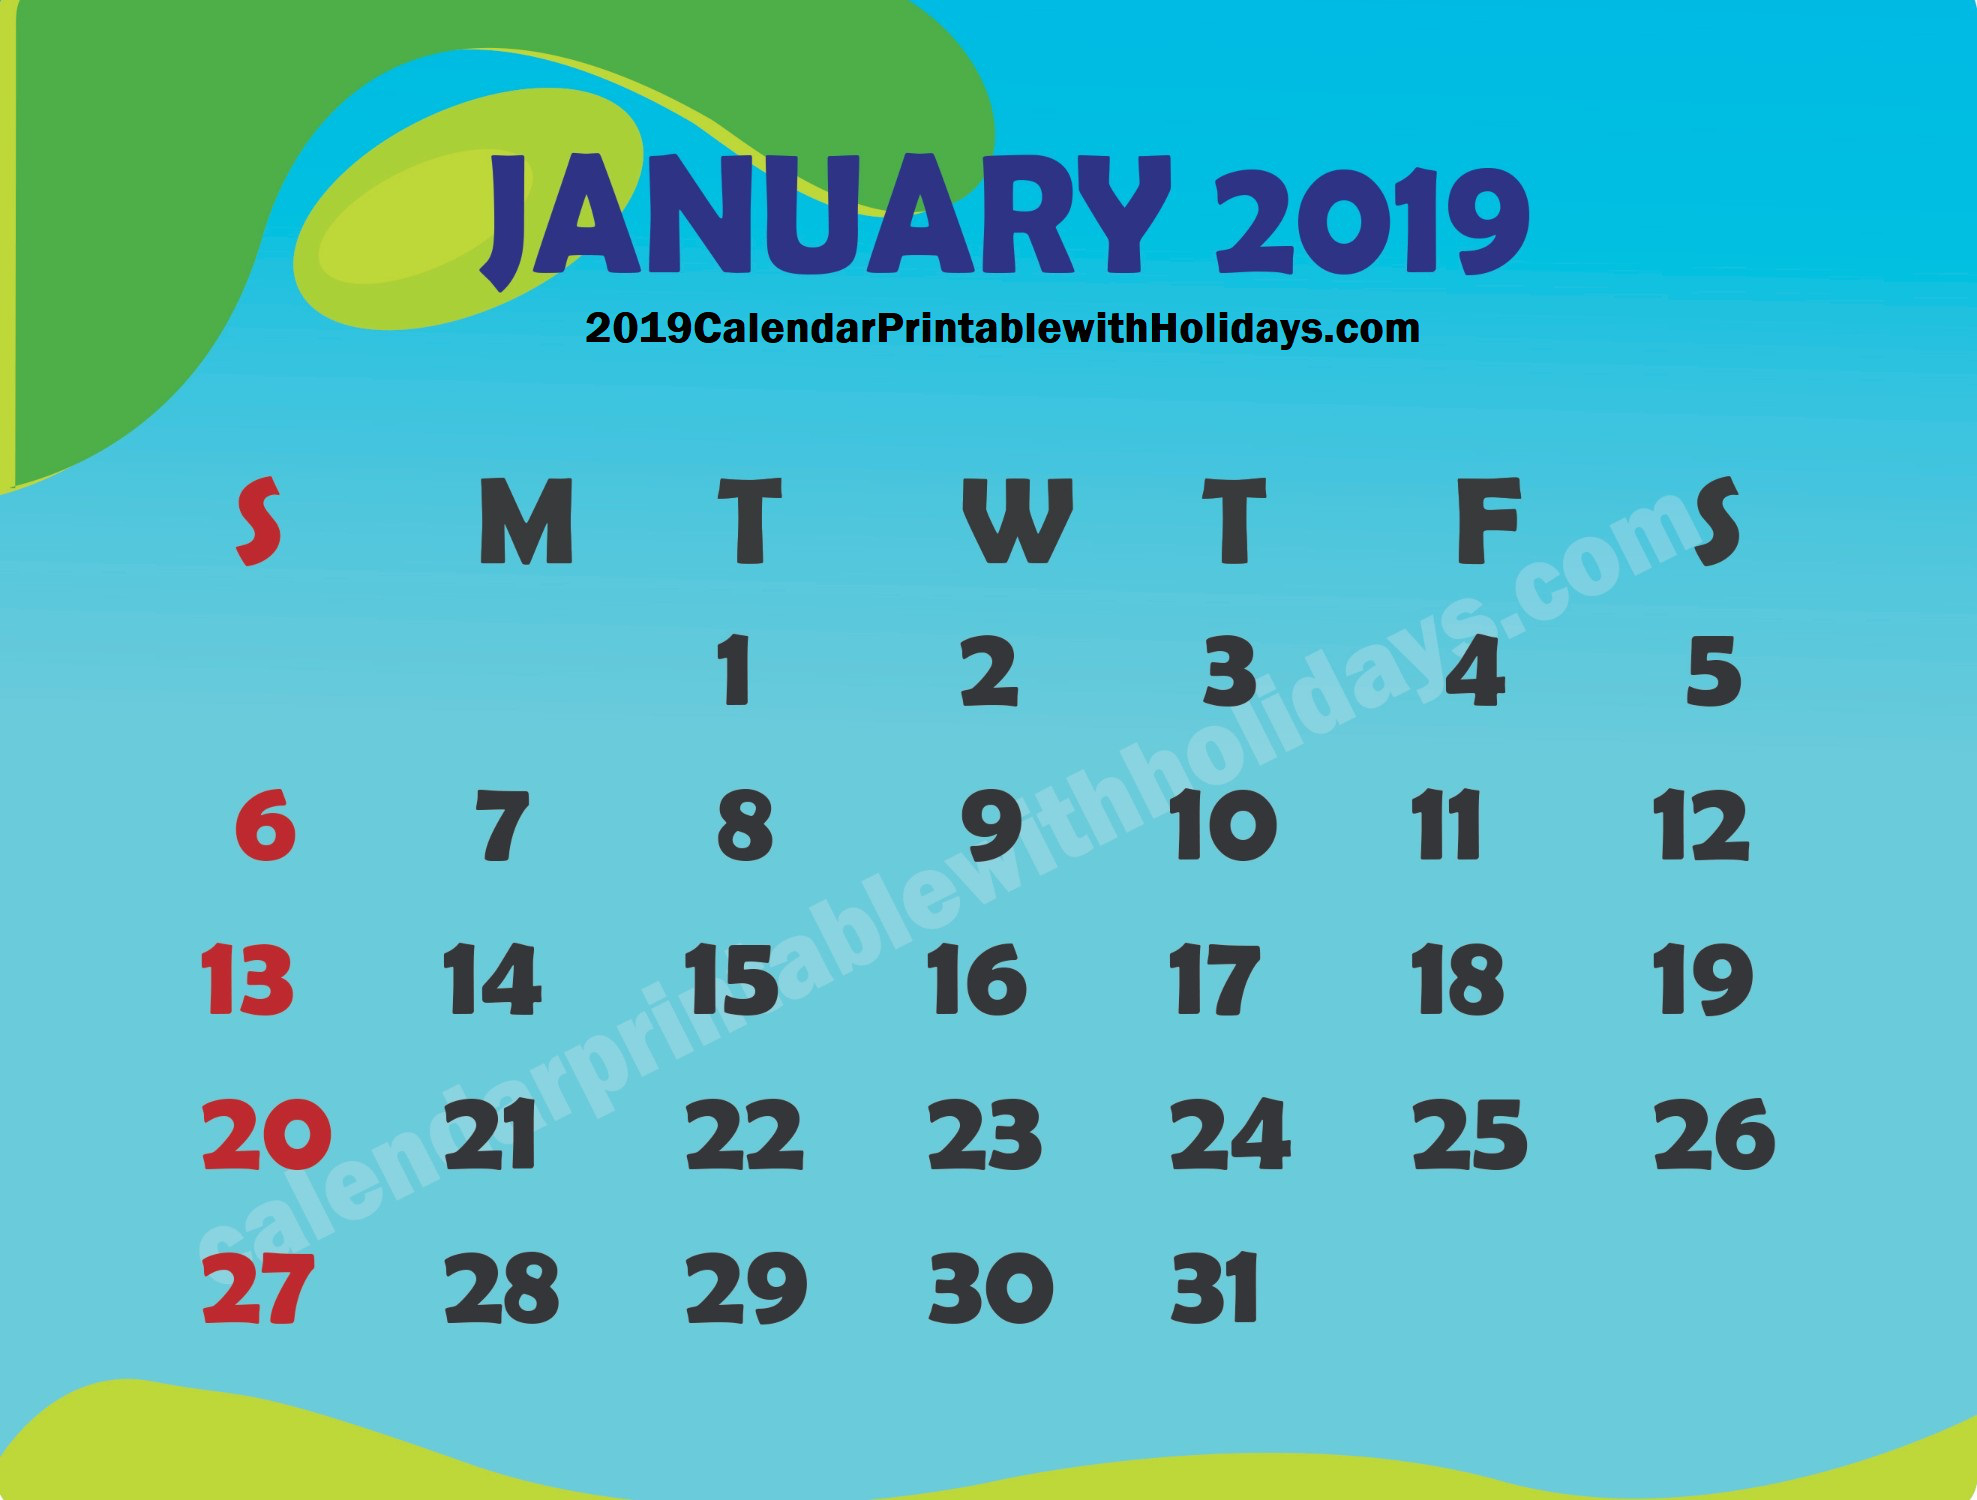 January 2019 Calendar - Calendar Printable Template Holidays 2019 6 Nations 2019 Calendar Download